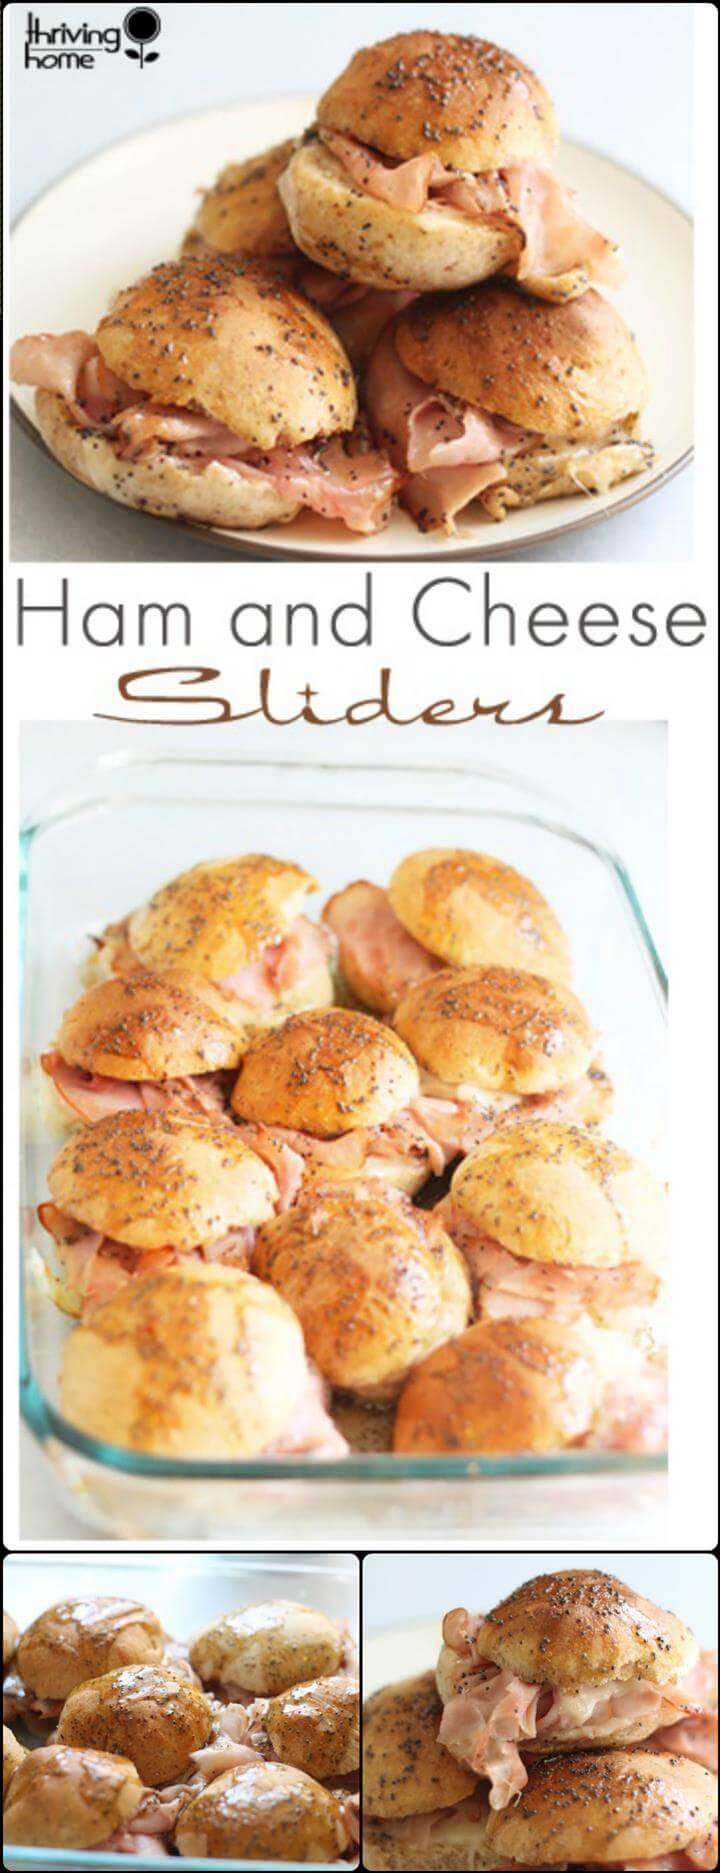 yummy hanm and cheese sliders